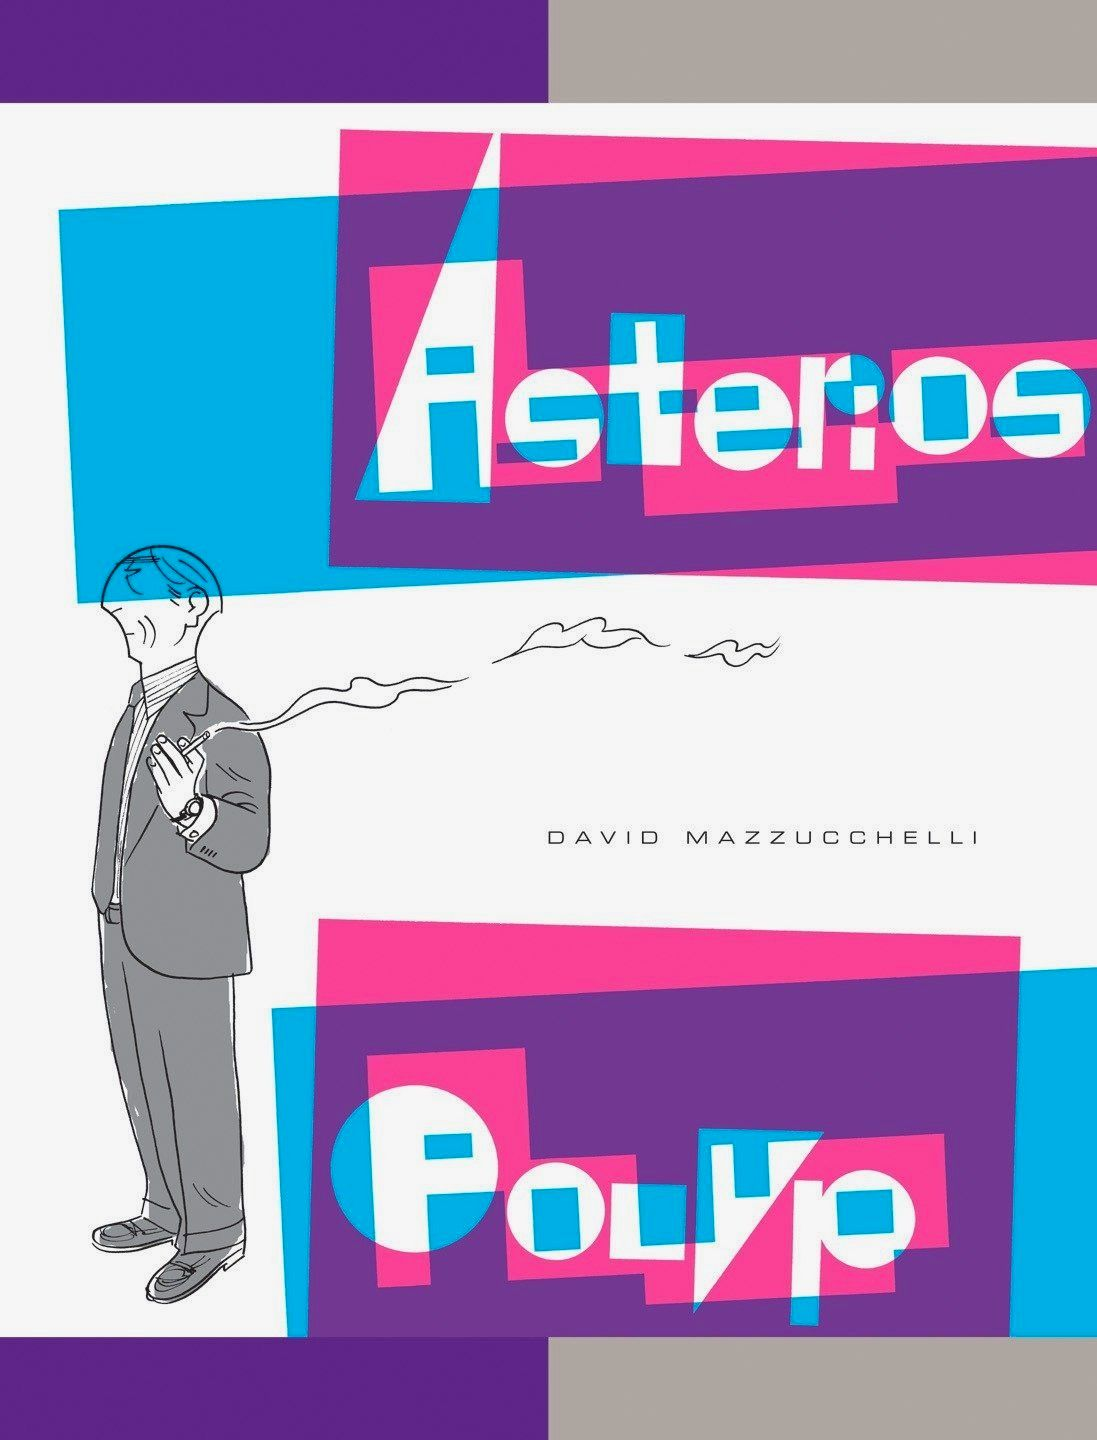 Asterios Polyp by David Mazzucchelli book cover